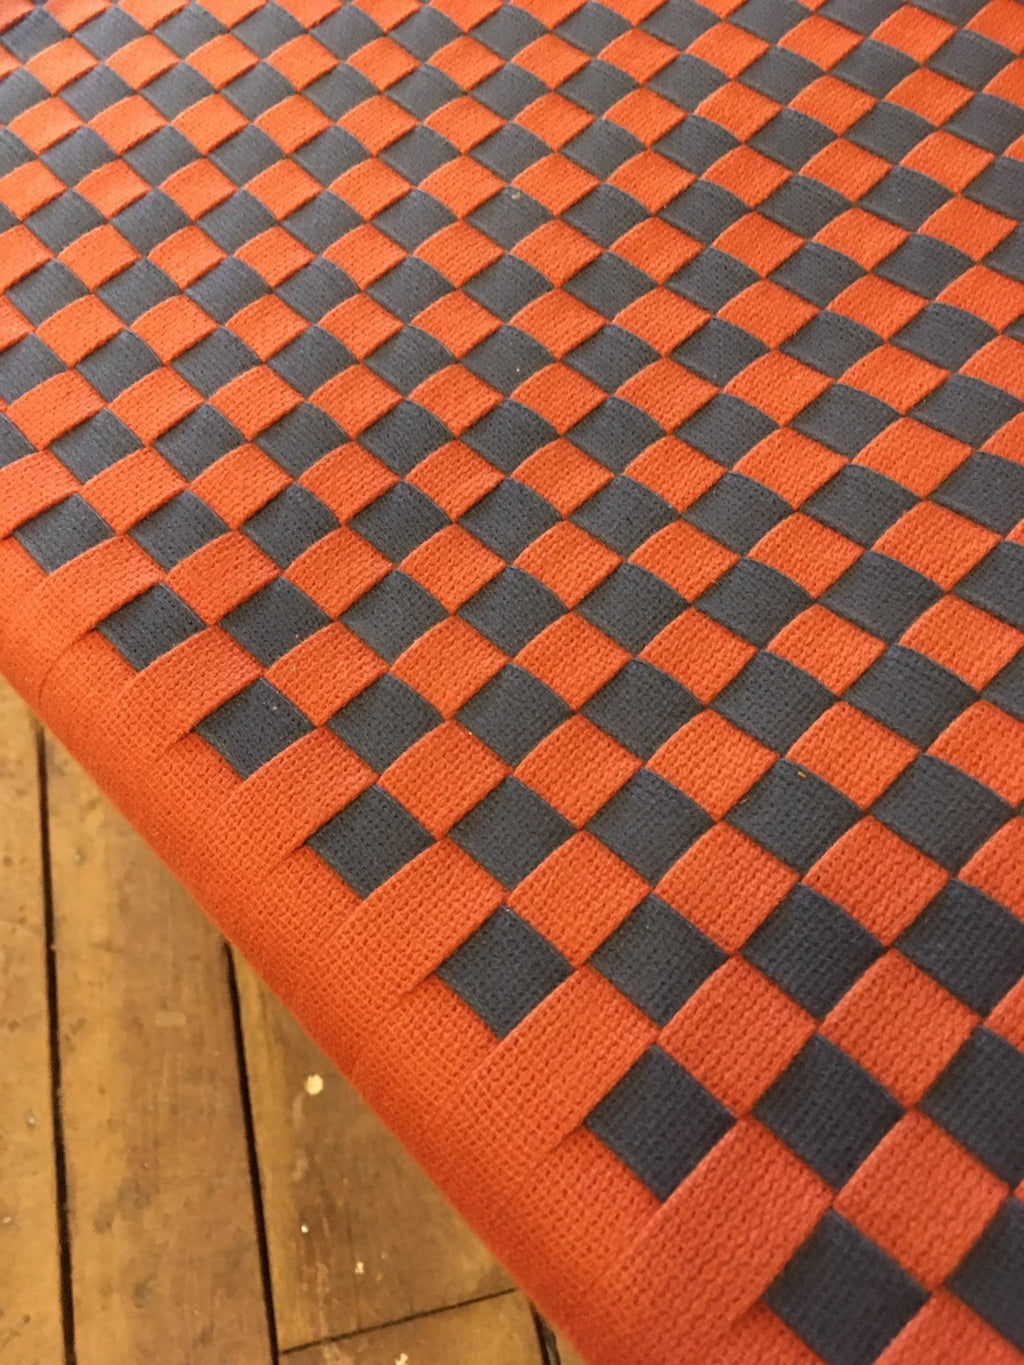 COTTAGE ARM CHAIR WITH CHECKERBOARD SEAT